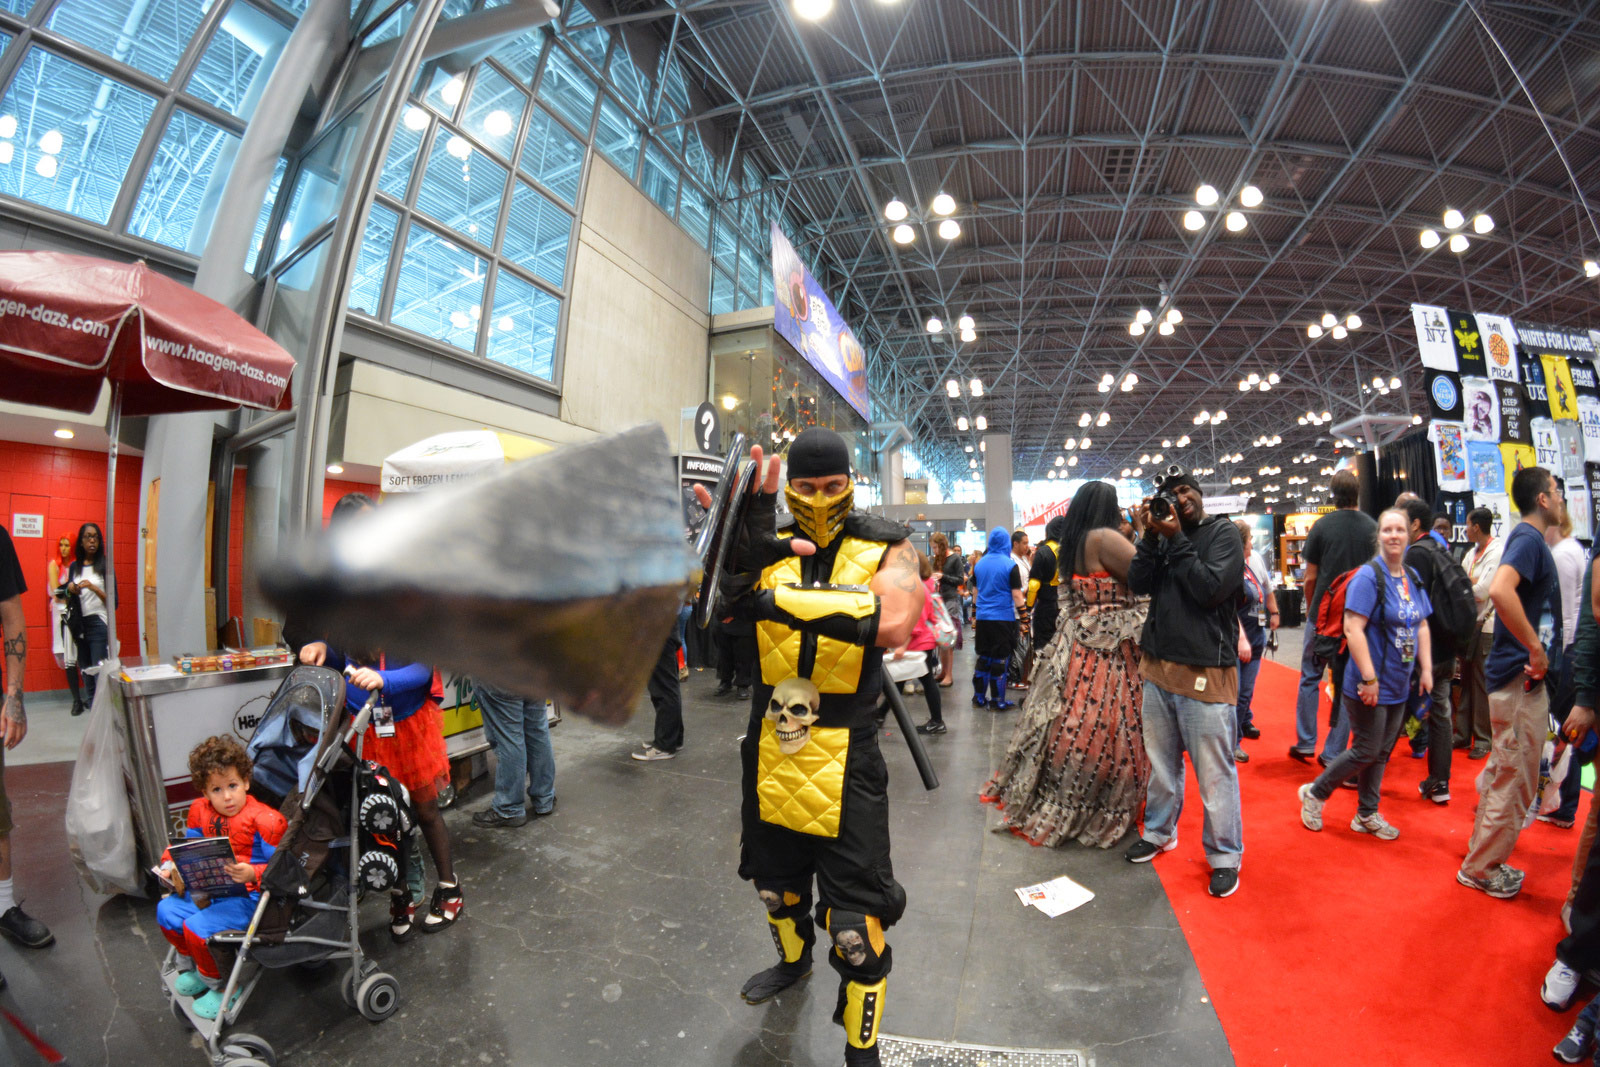 Cosplay photo from the 2013 New York Comic-Con by Jason24cf #6